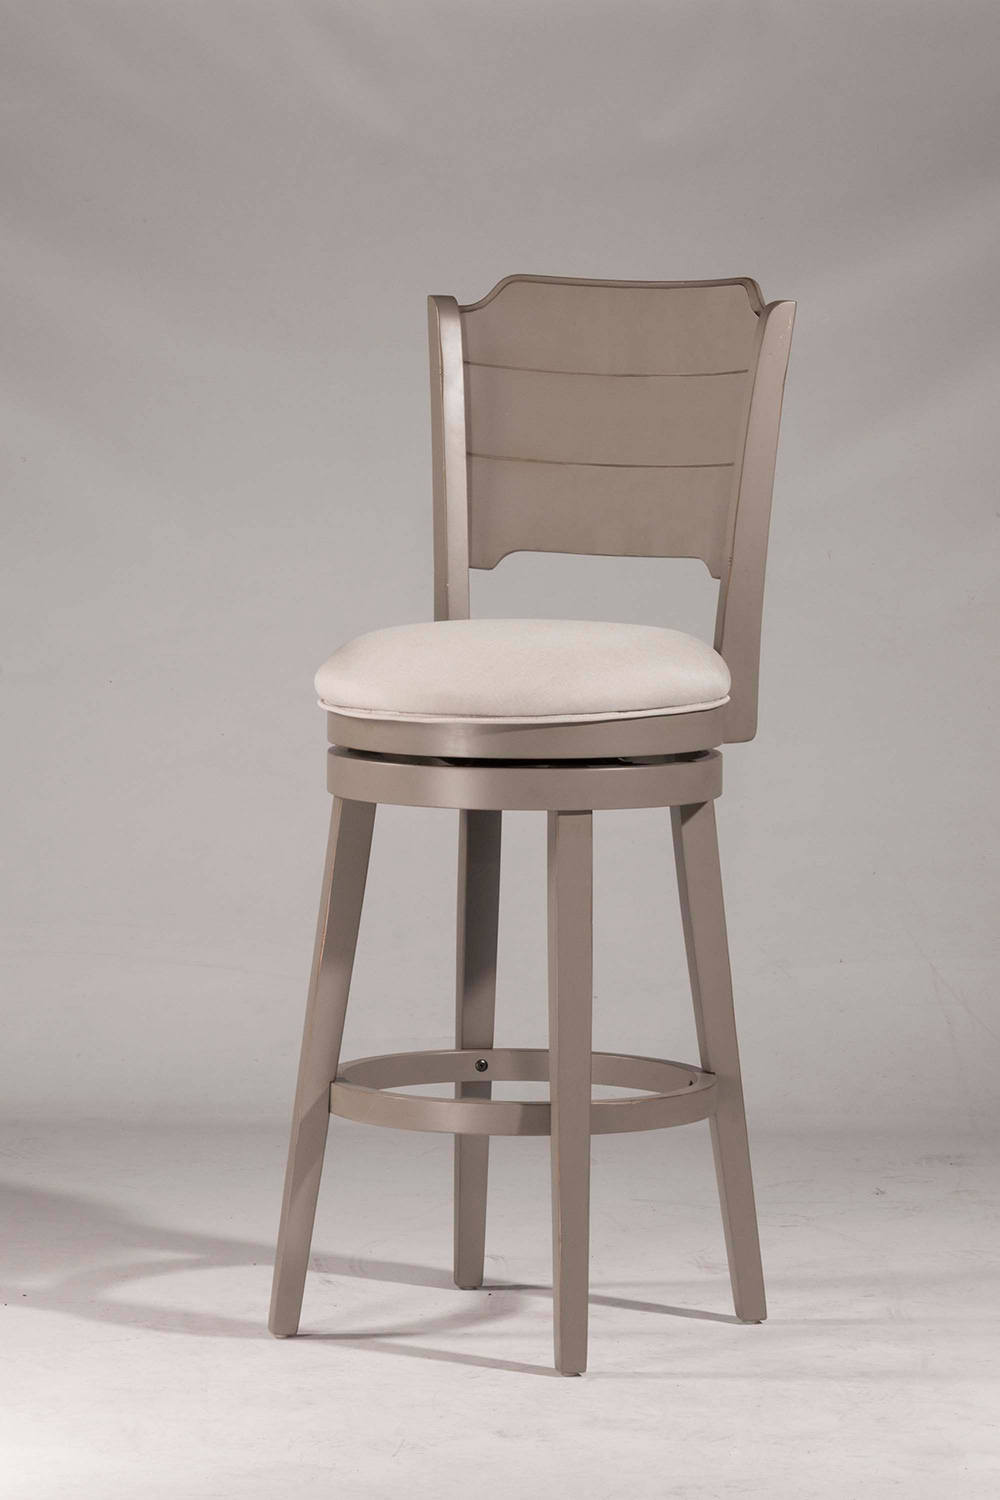 Hillsdale Clarion Swivel Bar Stool - Gray - Fog Fabric